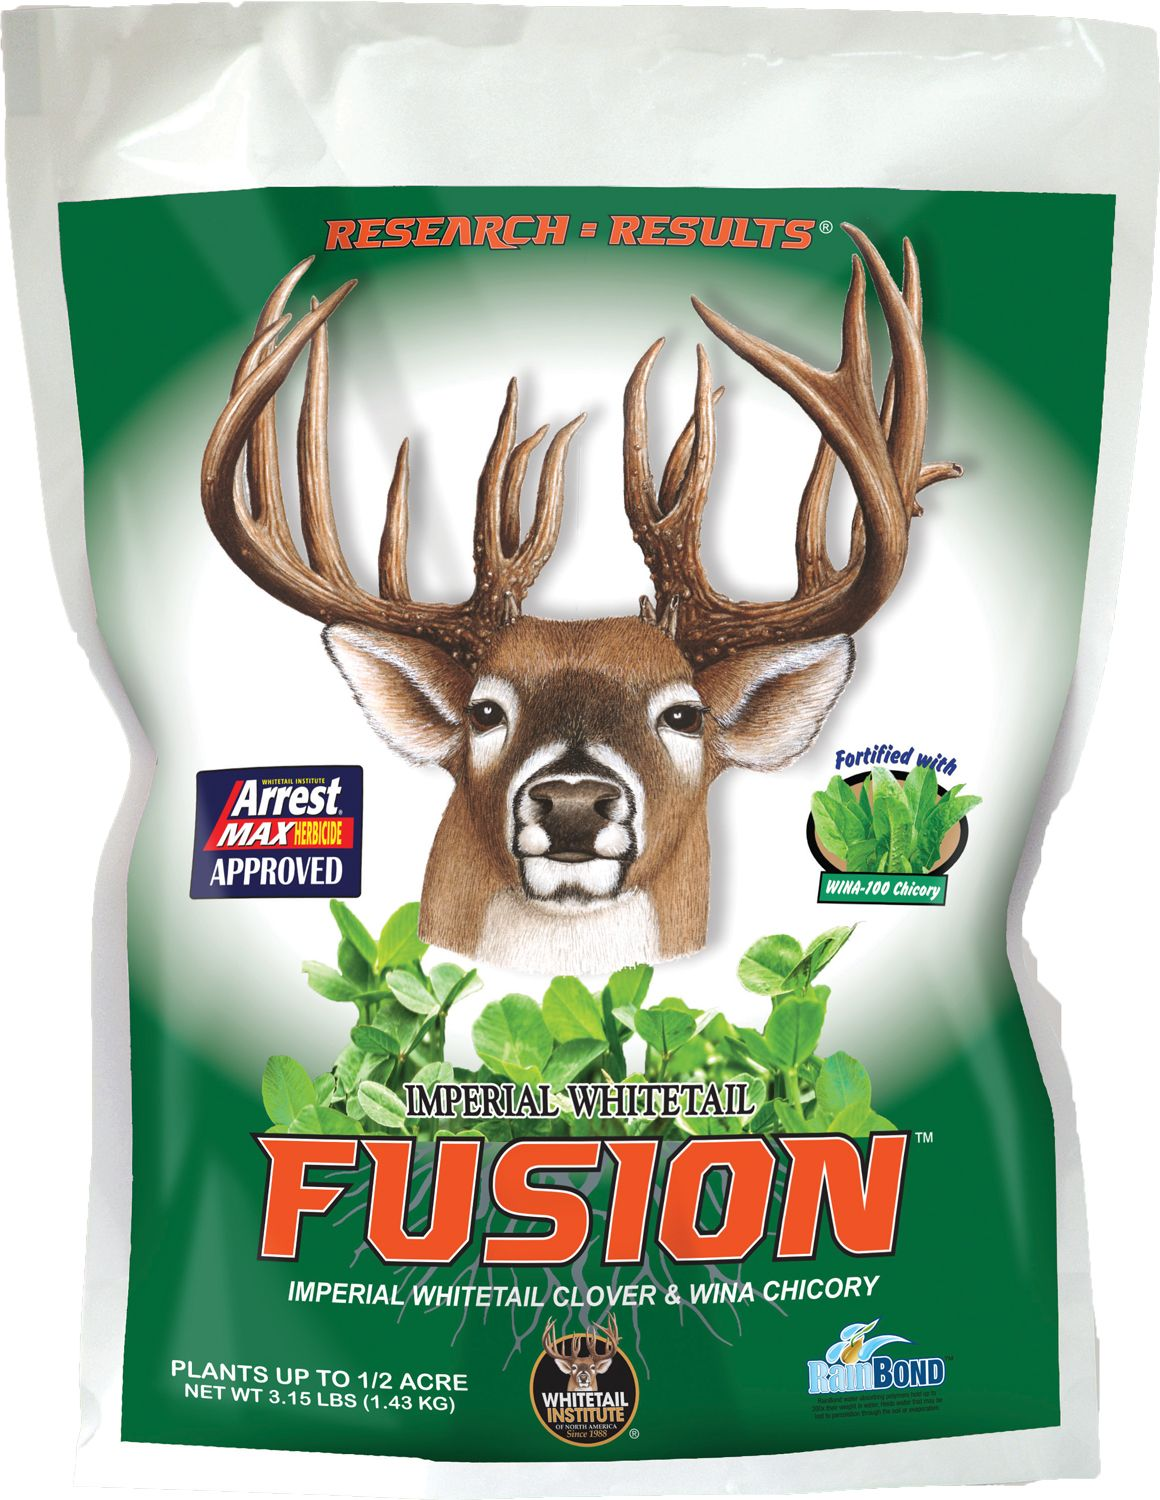 Whitetail Institute Imperial Whitetail Fusion Food Plot, Adult Unisex, Size: One size